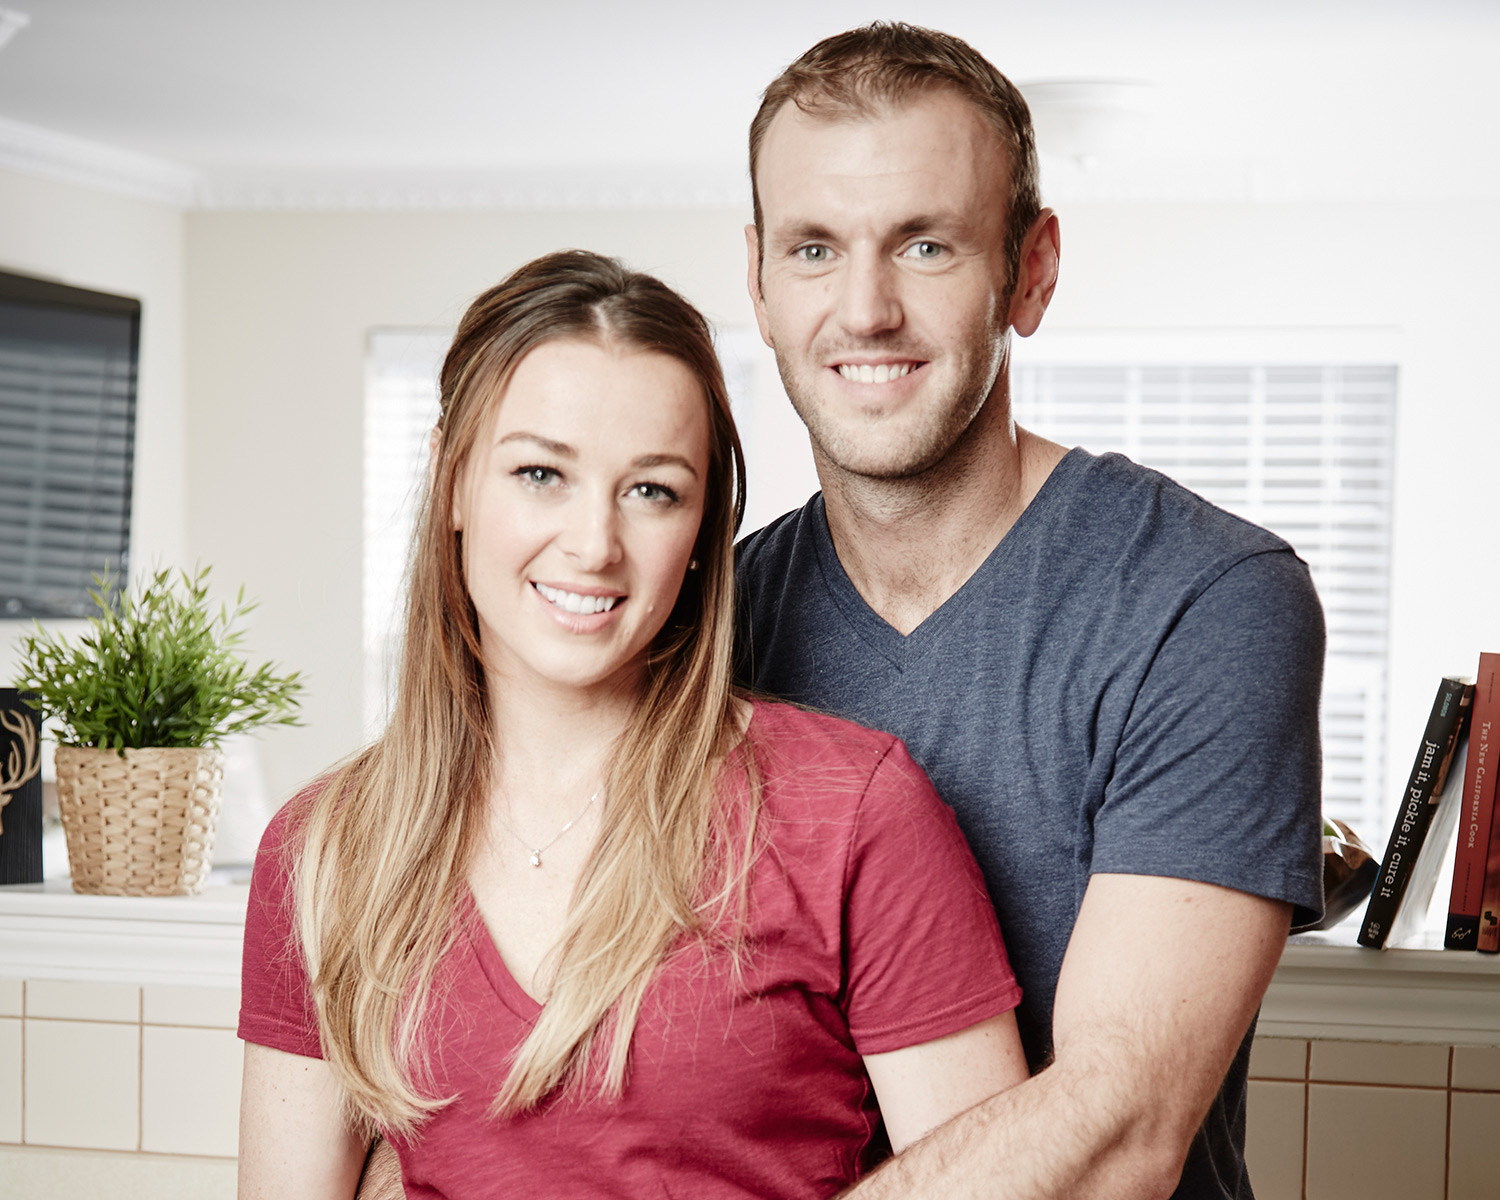 married at first sight doug and jamie meet